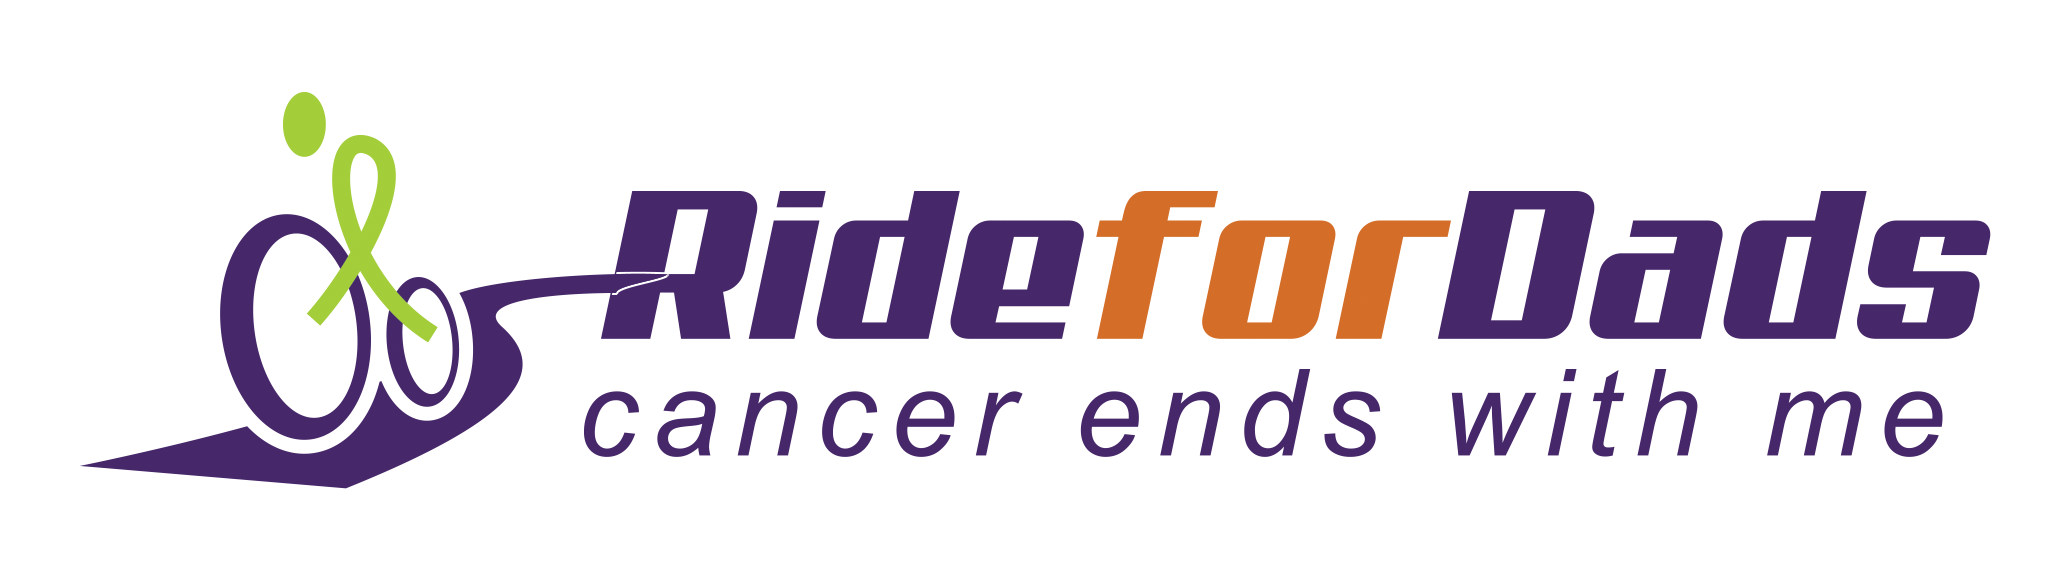 Ride for Dads Golf Classic logo